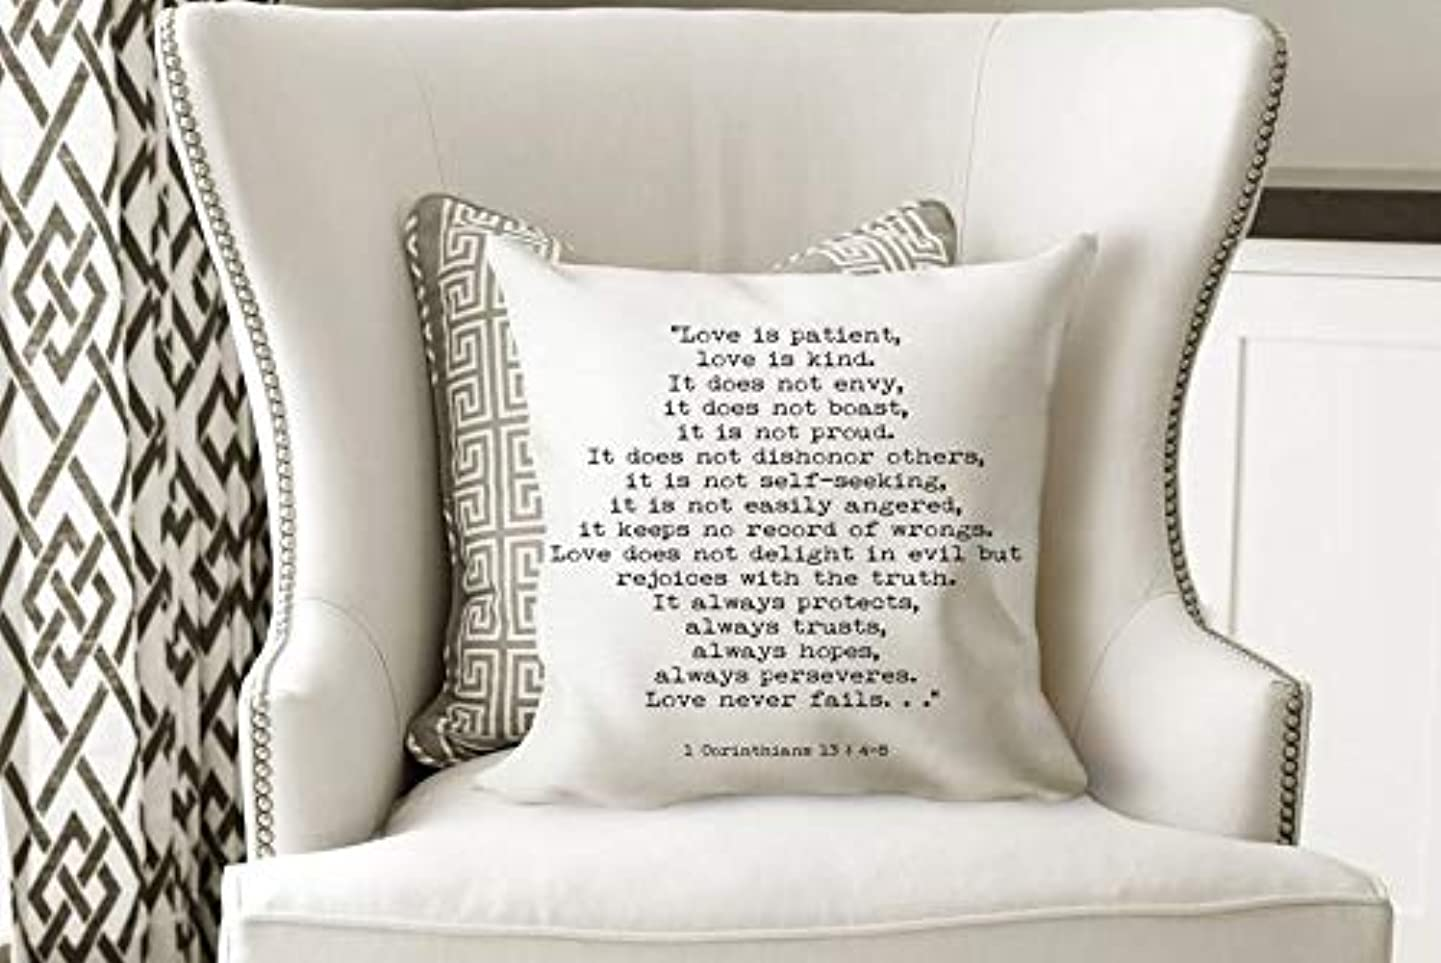 1 Corinthians 13 decorative pillow - scripture quote pillow cover with insert, Bible Verse cushion cover, sofa pillow for bedroom decor